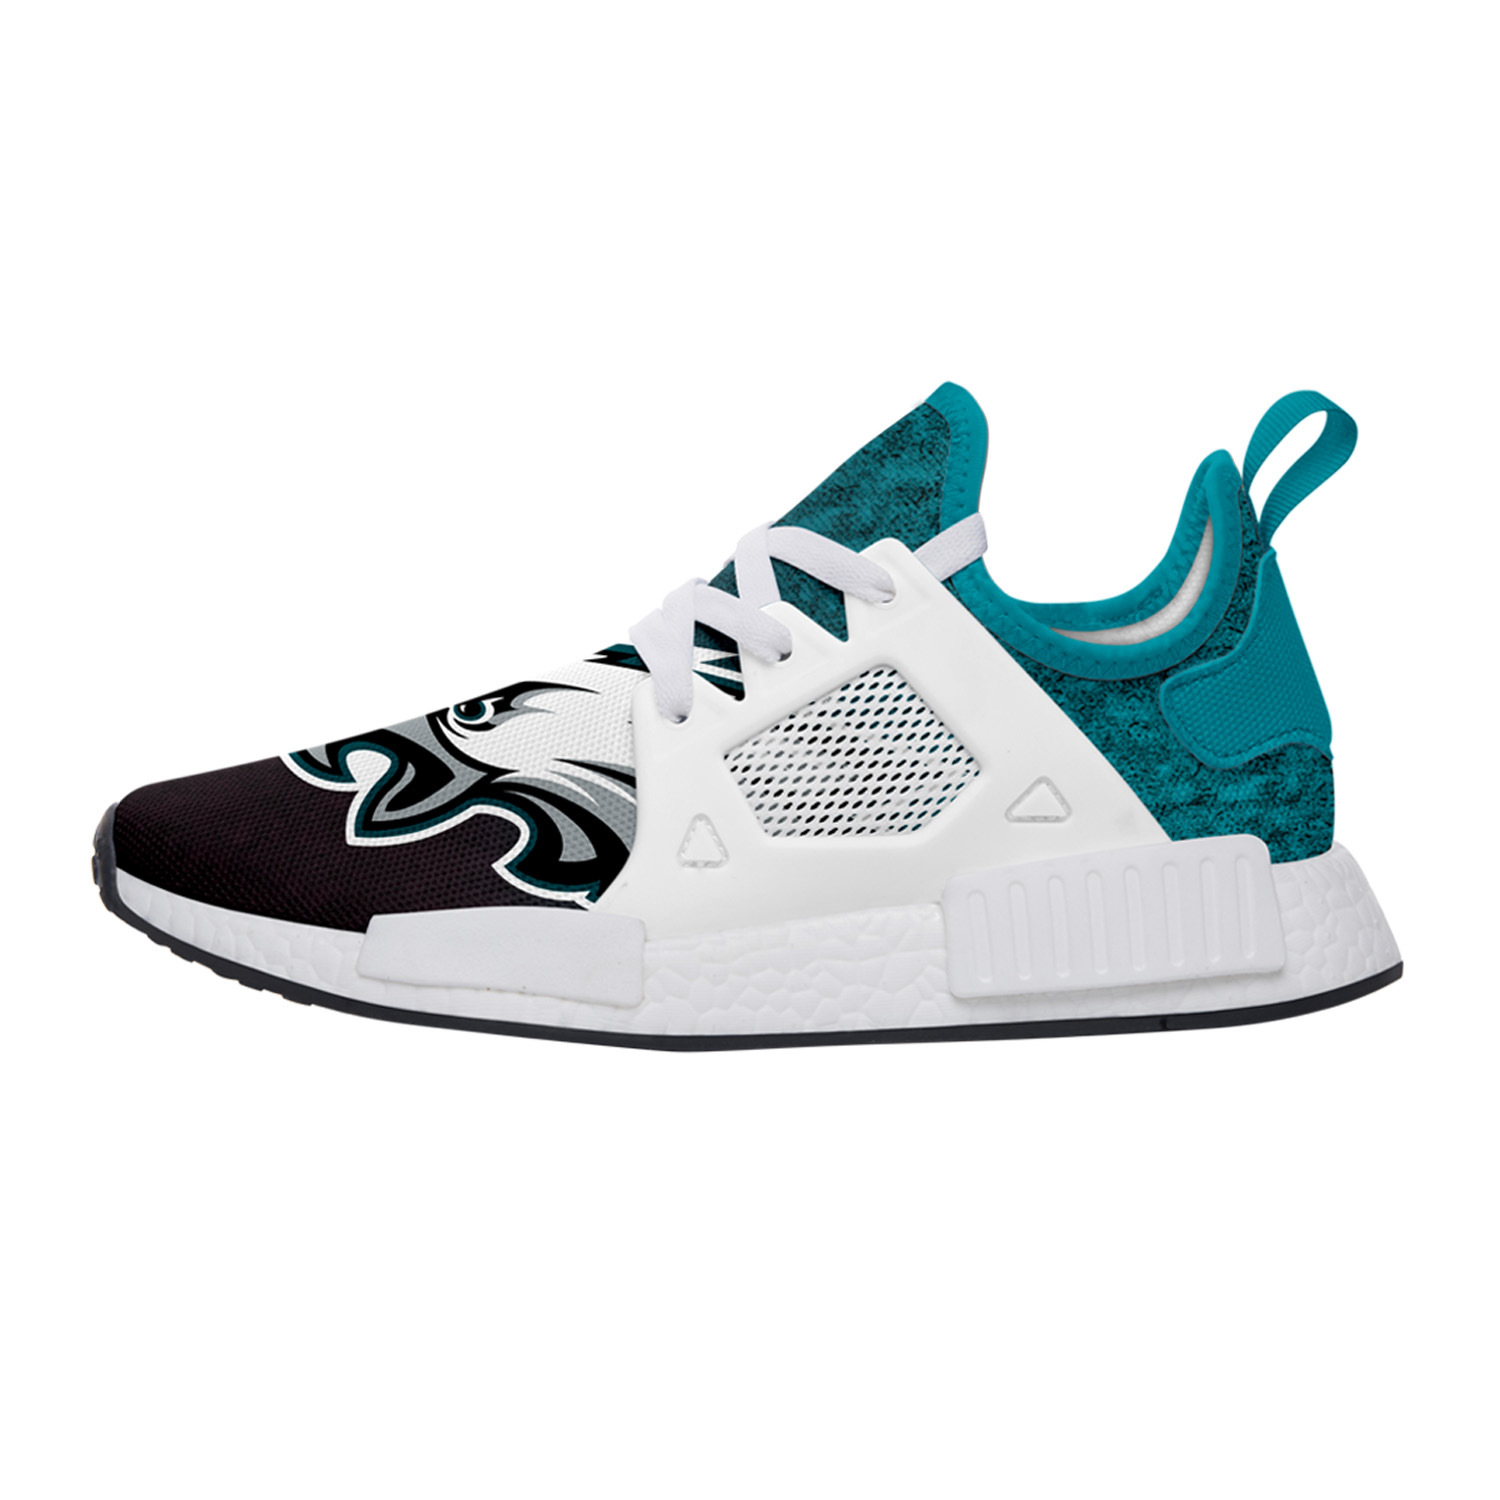 f553e2ab530b China Custom Shoes for Team Eagles Nmd Design Your Own Fashion Sneakers -  China Casual Sneaker